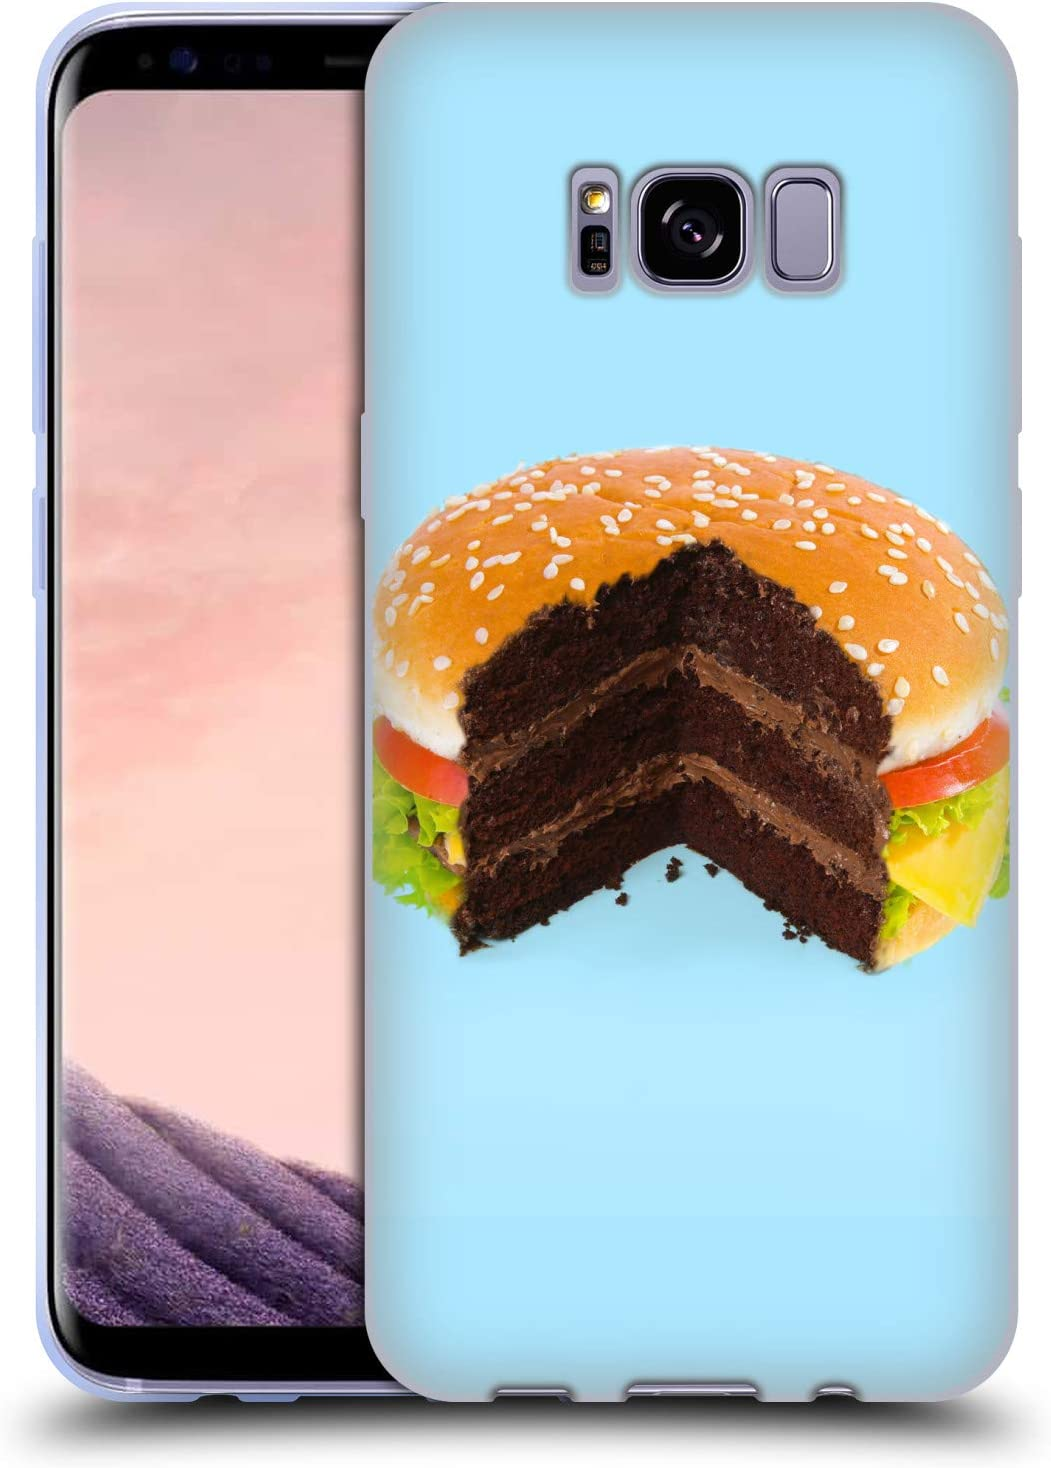 Head Case Designs Officially Licensed Paul Fuentes Hamburger Cake Junk Food Soft Gel Case Compatible with Samsung Galaxy S8+ / S8 Plus